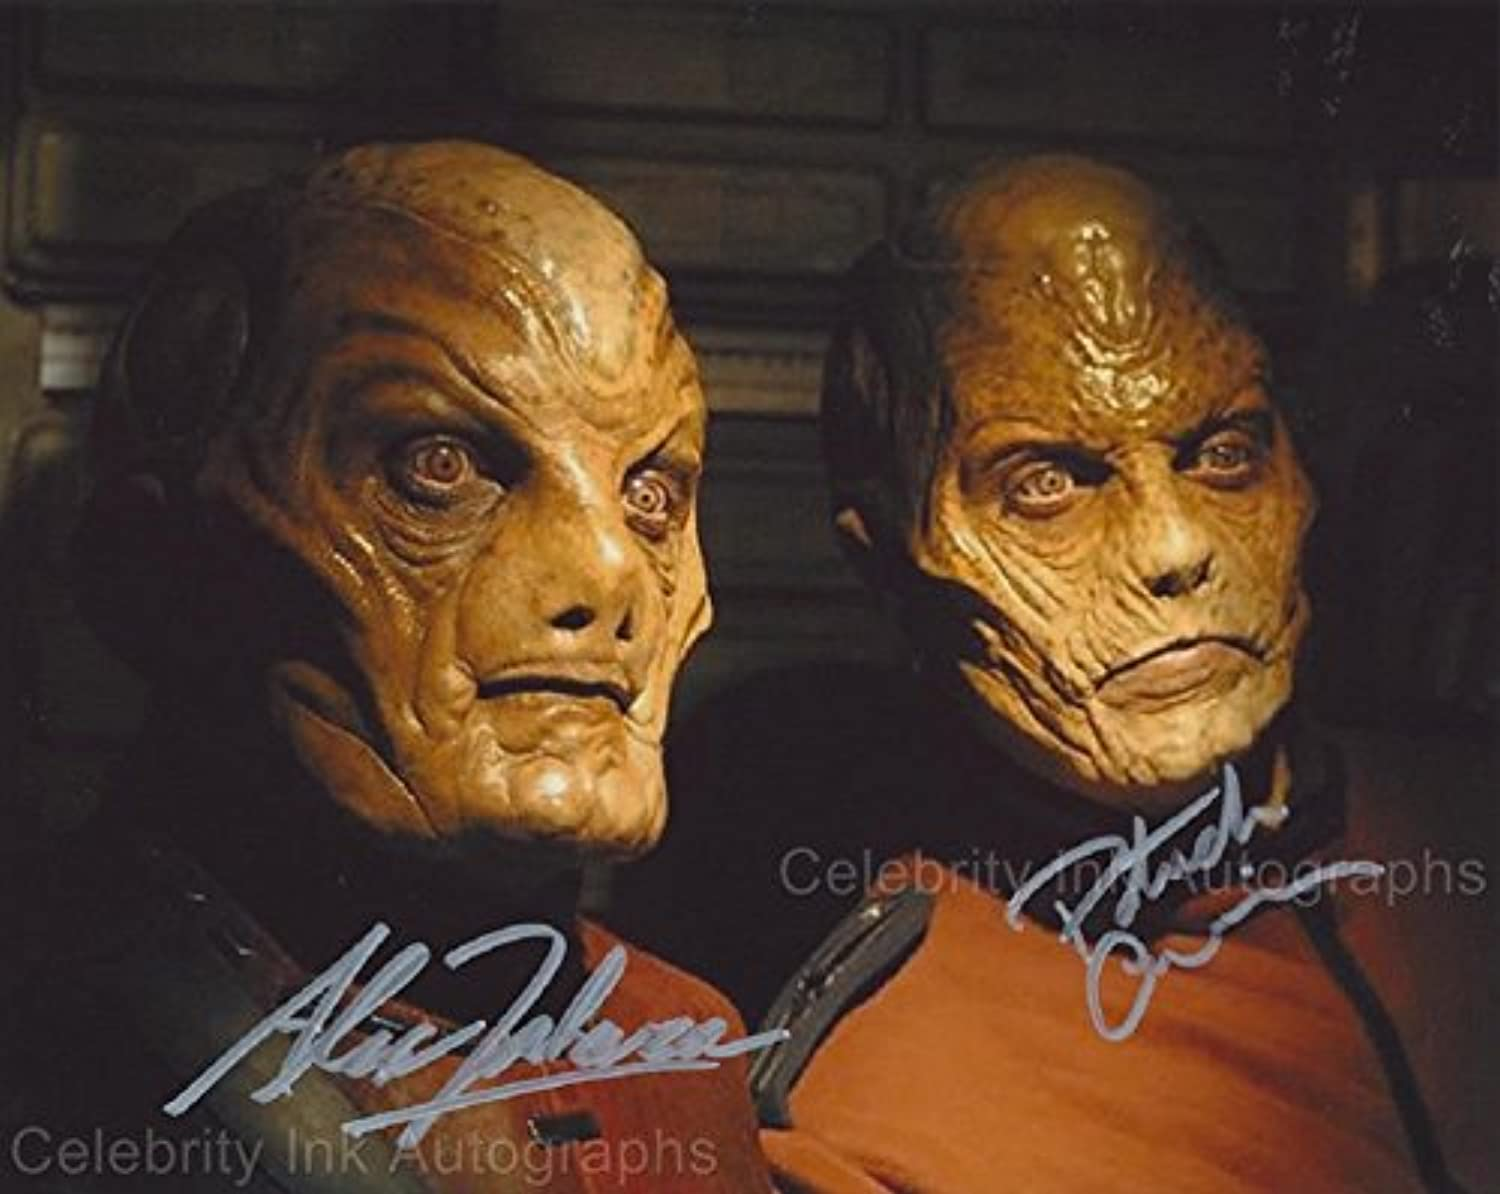 ALEX ZAHARA and PATRICK CURRIE as Warwick and Eamon Finn  Stargate SG1 GENUINE AUTOGRAPHS